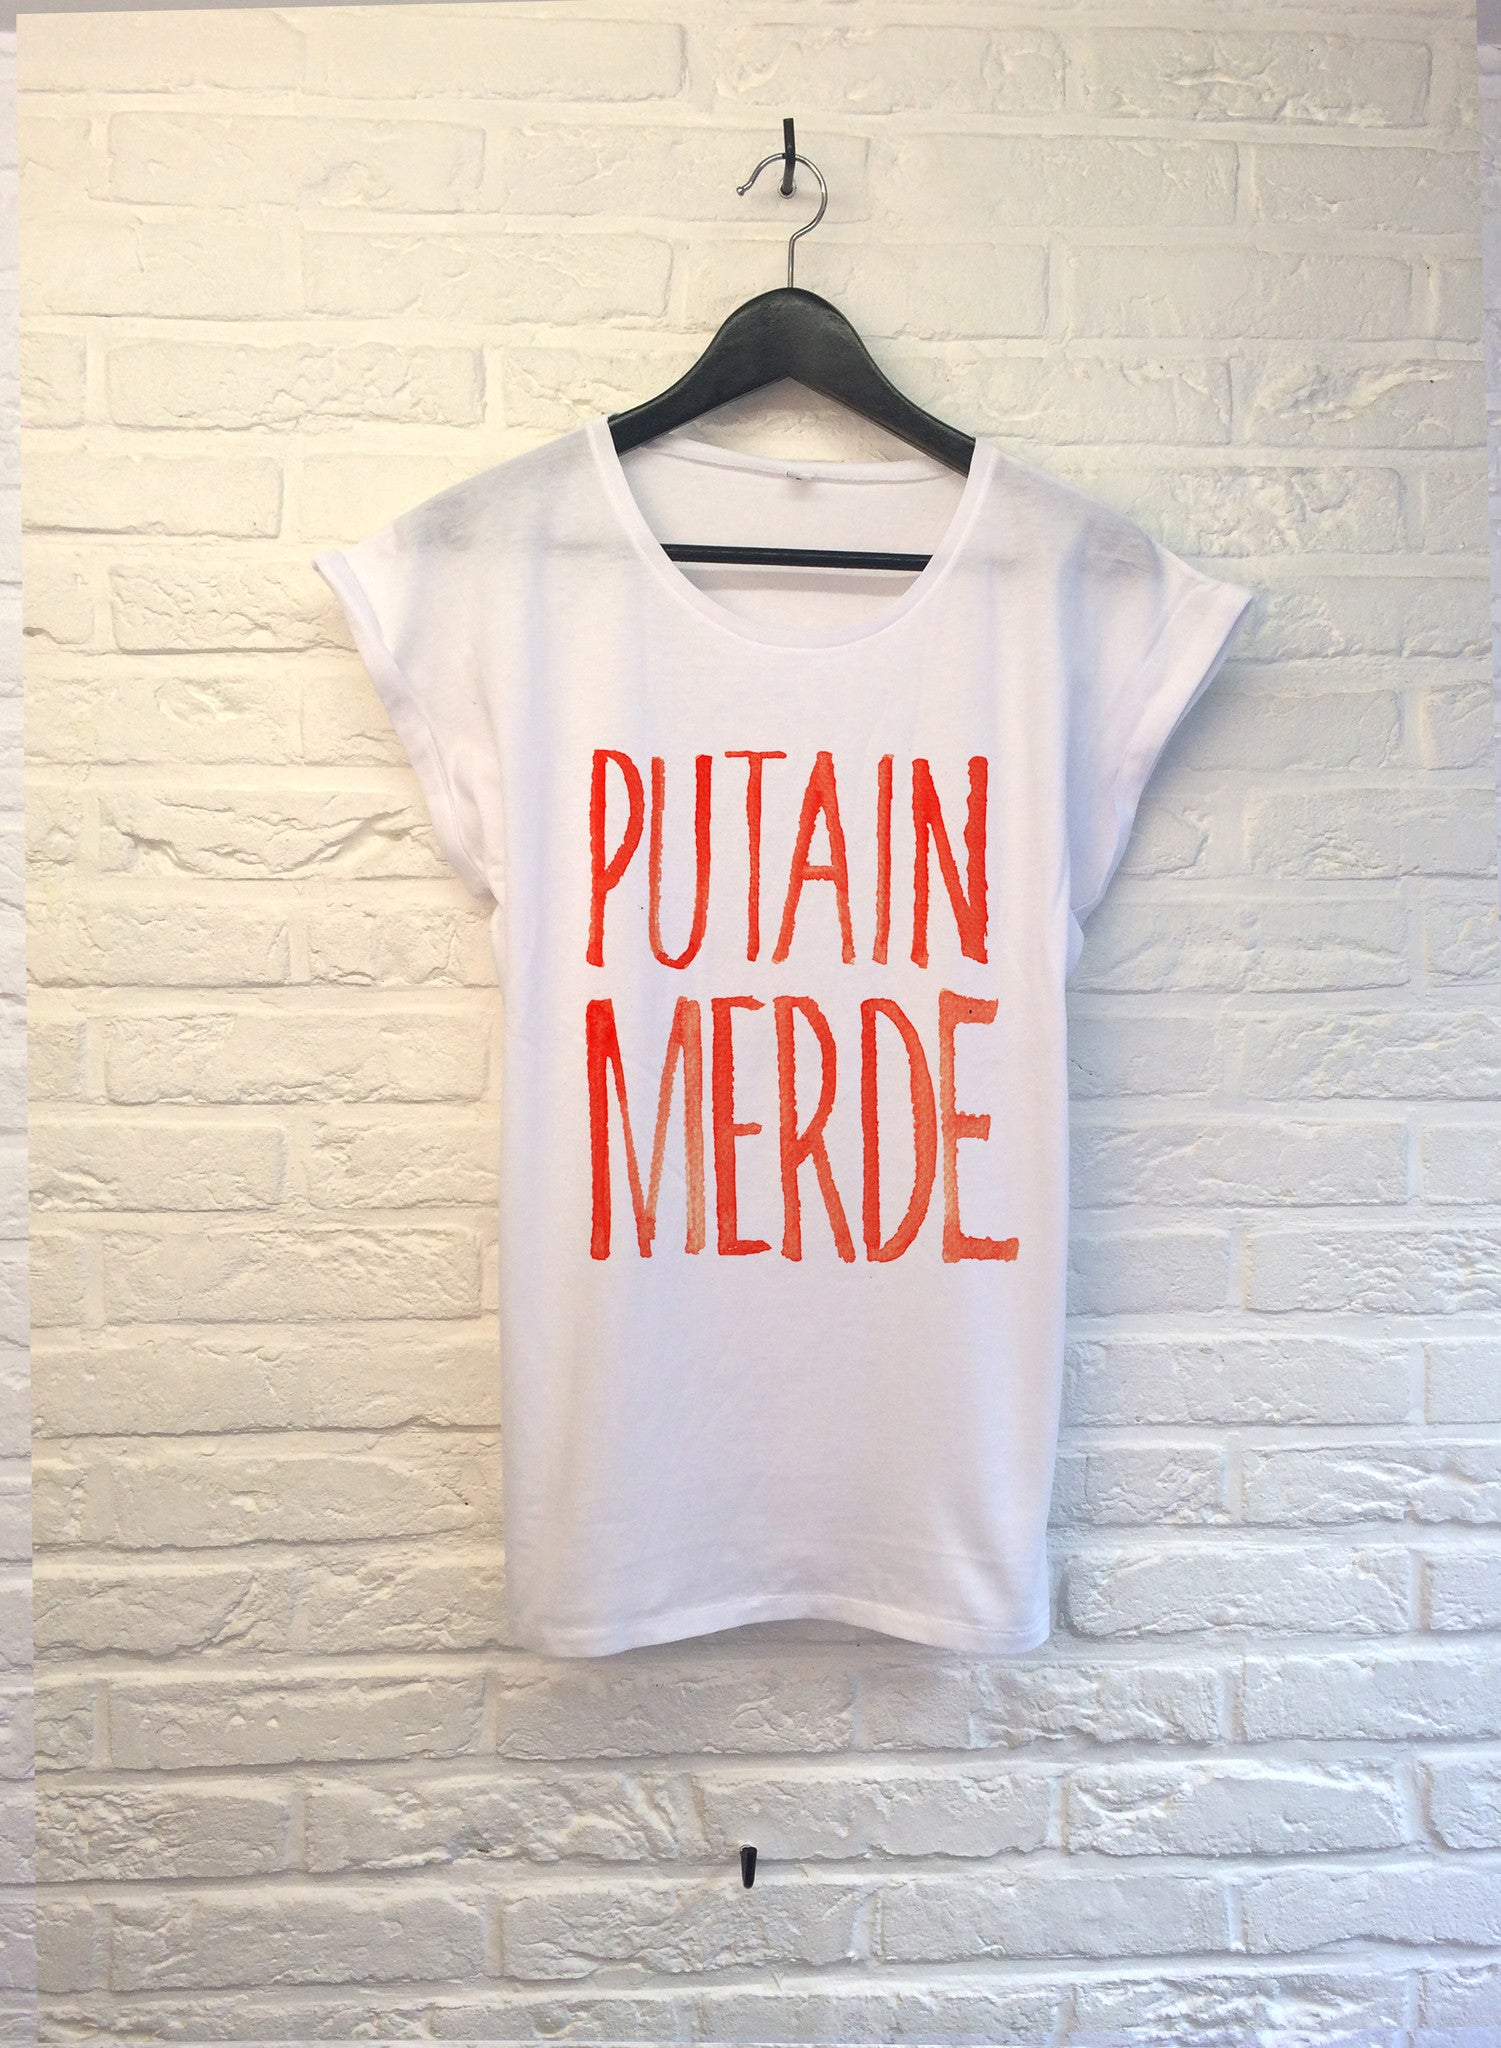 TH Gallery - Putain Merde - Femme-T shirt-Atelier Amelot